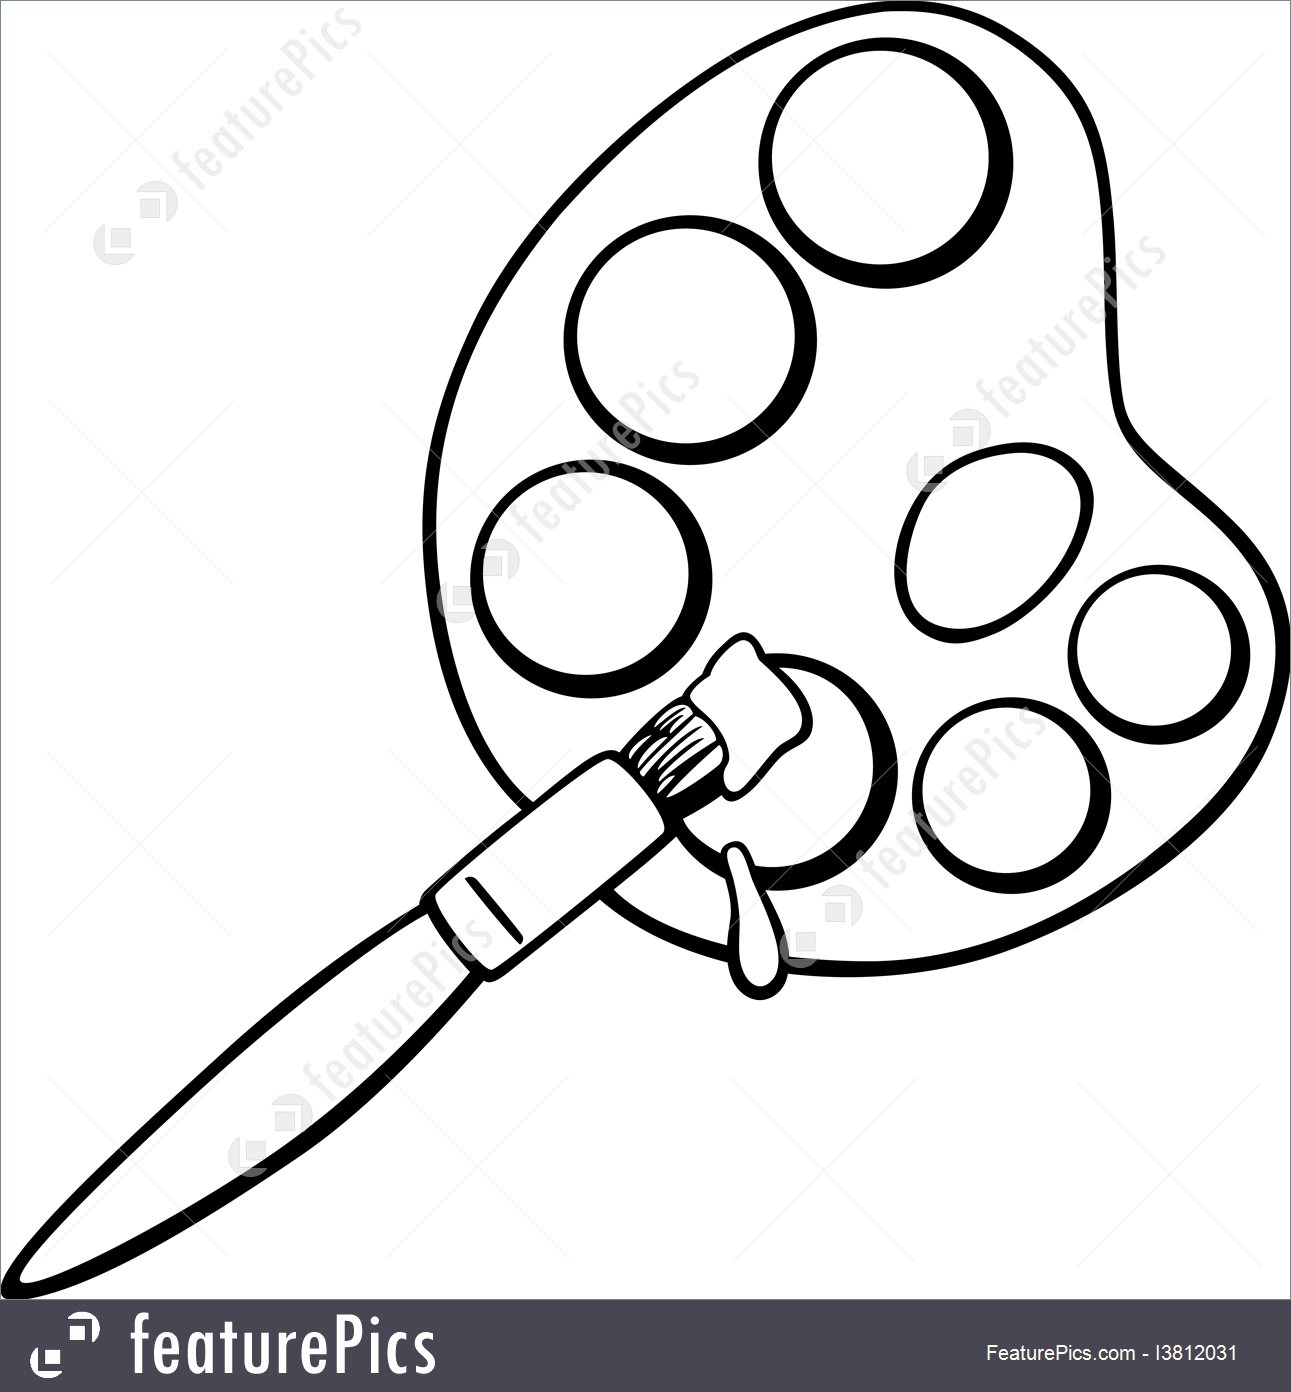 1291x1392 Artistic Tools Brush And Palette Clip Art Coloring Page